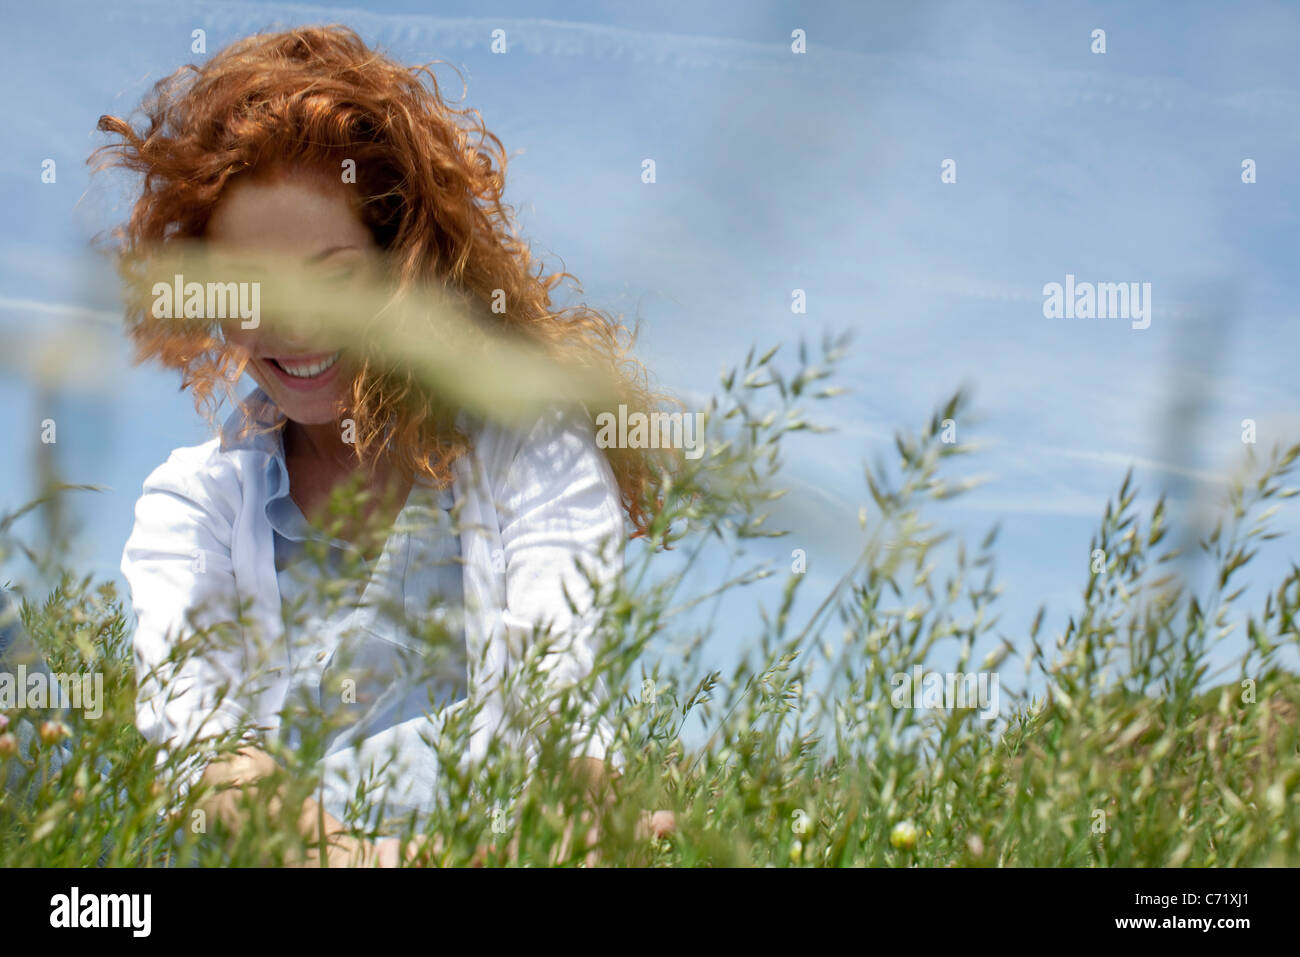 Redheaded woman in grass Stock Photo